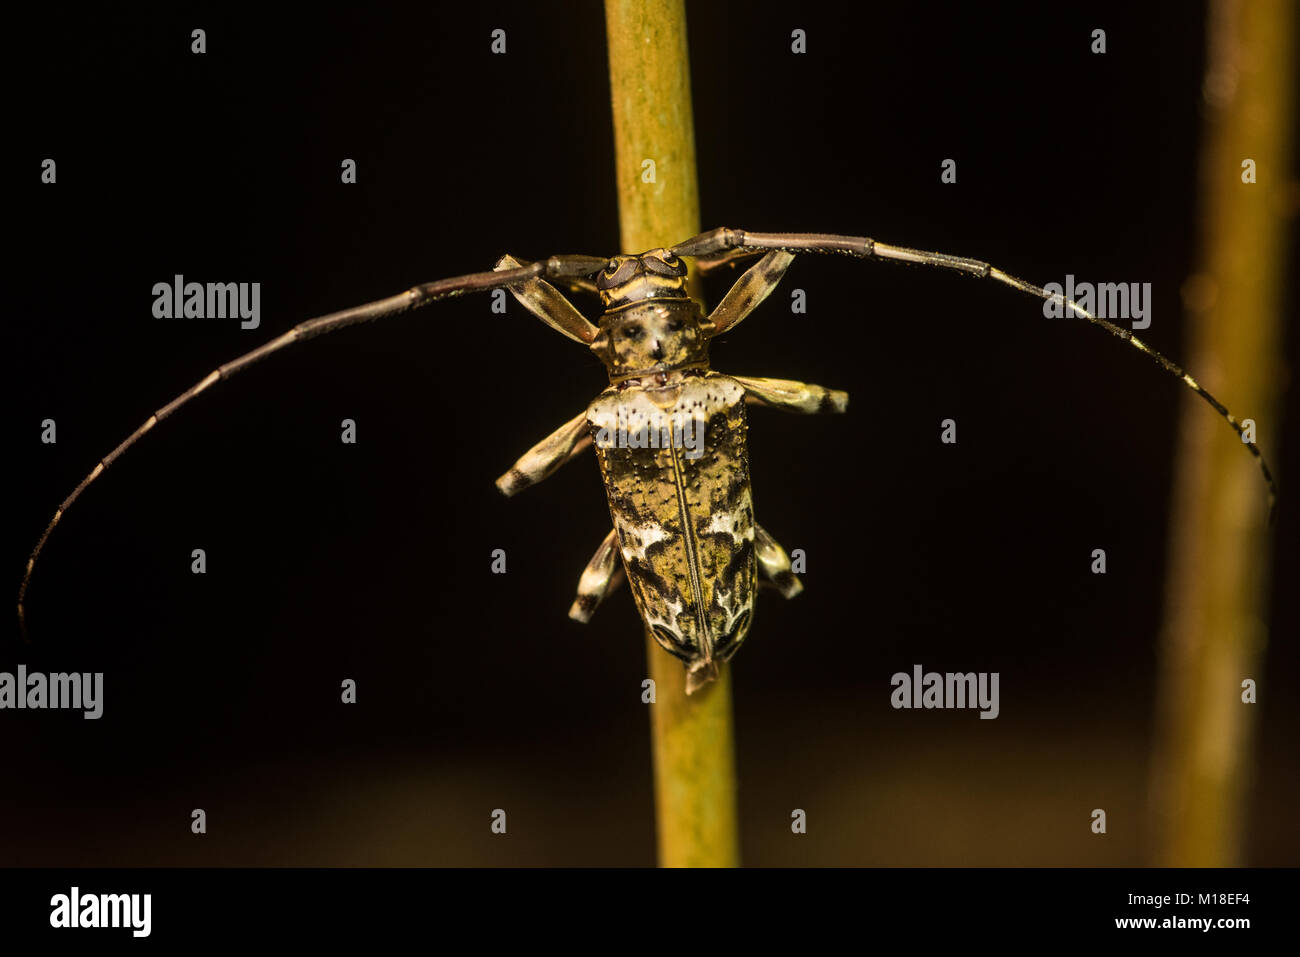 Some sort of long-horn beetle from the Amazon jungle. - Stock Image